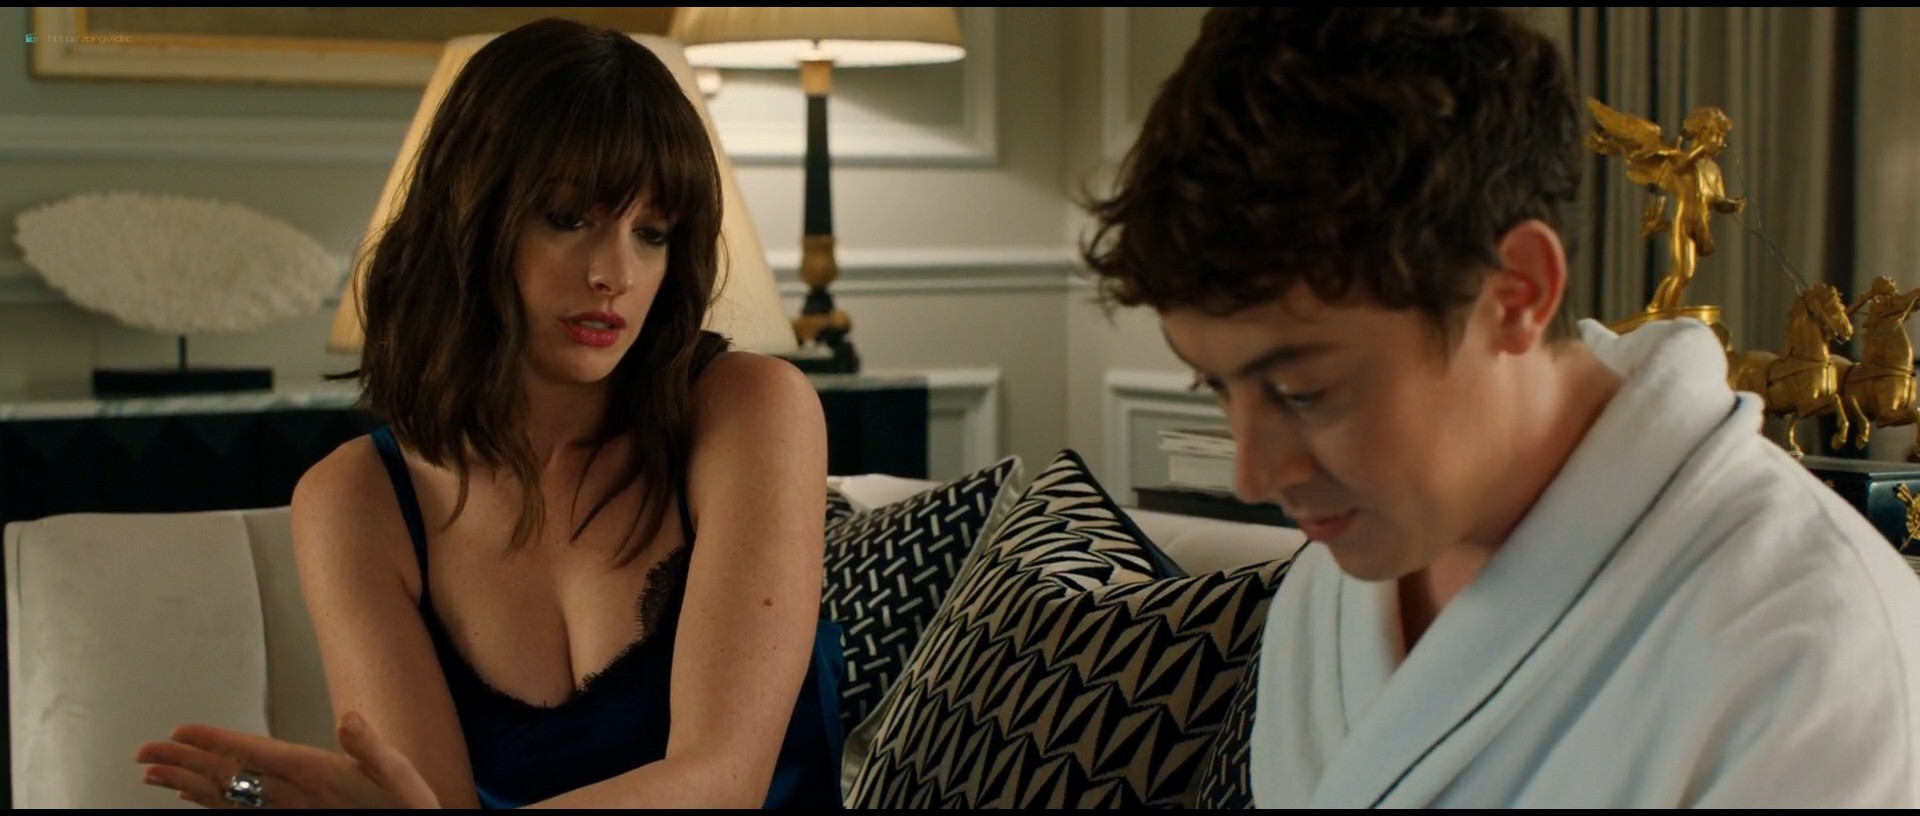 Anne Hathaway hot and sexy - The Hustle (2019) HD 1080p Web (3)